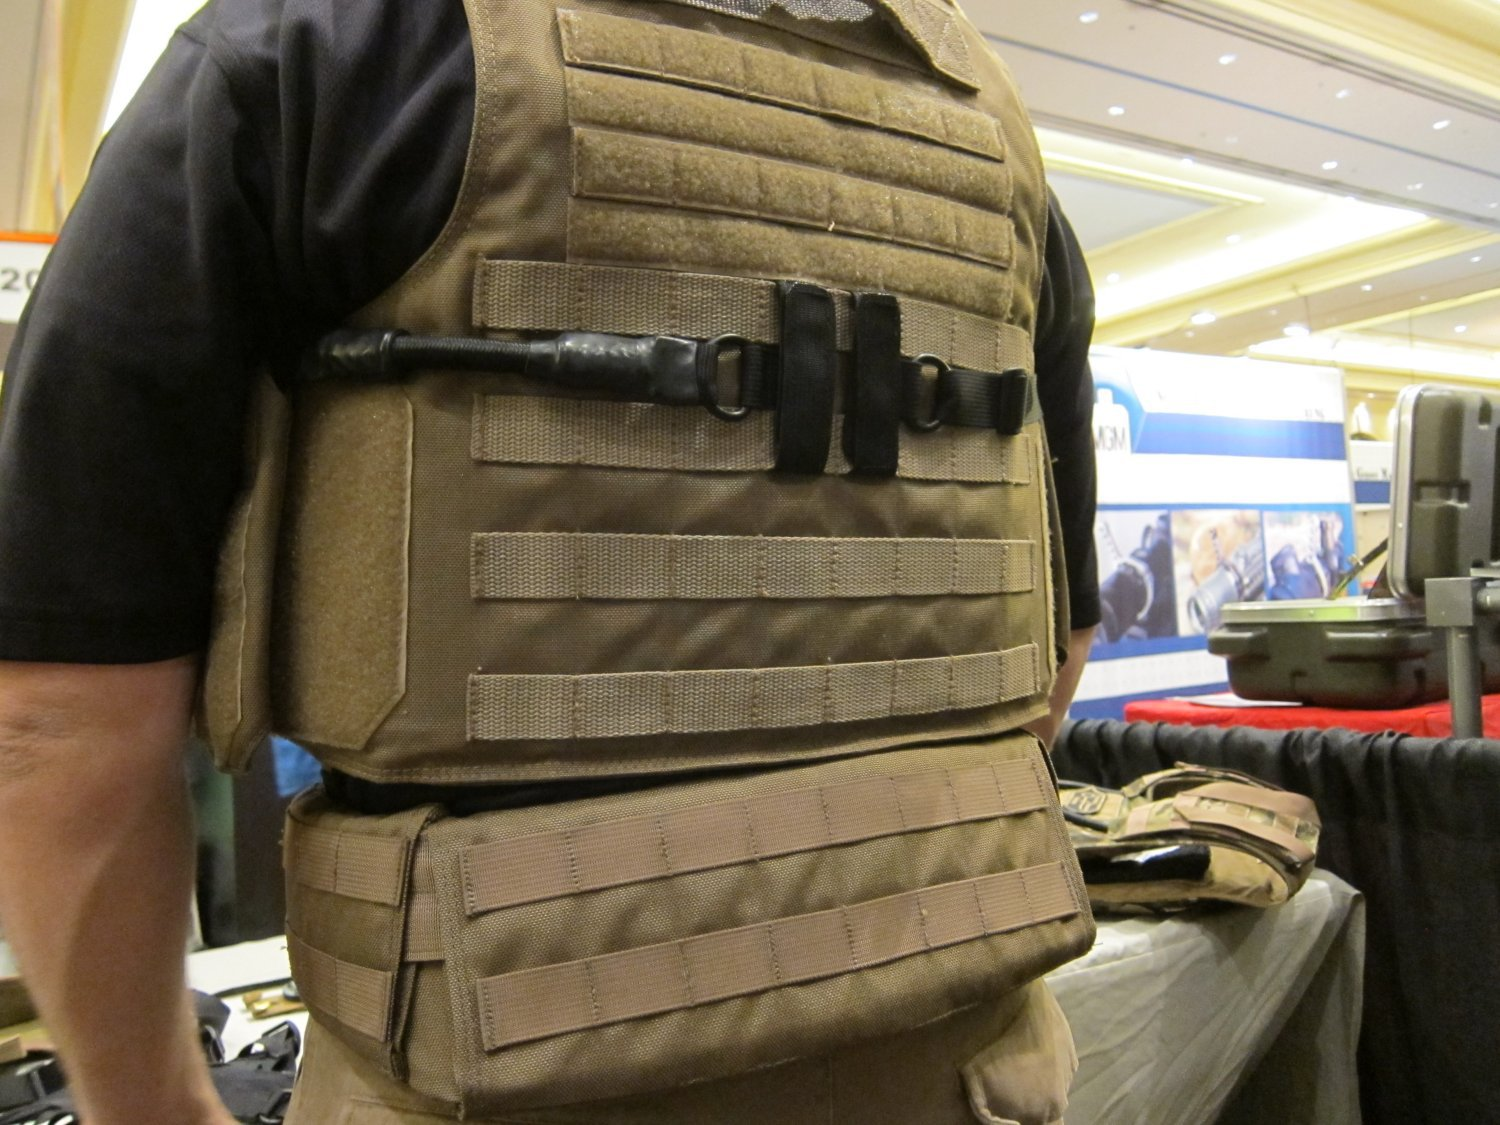 P2 Systems P2Sys Underarm Double Under Integra Sling and Integra Belt with Integral Armor Waist Supports Plastic Stays at SHOT Show 2011 1 <!  :en  >Hardpoint Equipment Tactical Armor Carriers (formerly Personal Protective Systems, or P2 Systems): Best Tactical Body Armor Plate Carriers on the Planet? DR Looks at the Latest Hard Point Hard Armor Plate Carriers, Battle Belt, MOLLE Backpack System, and Passive Ventilation Channels/Removable Padding System at SHOT Show 2011 (Photos and Video!) <!  :  >